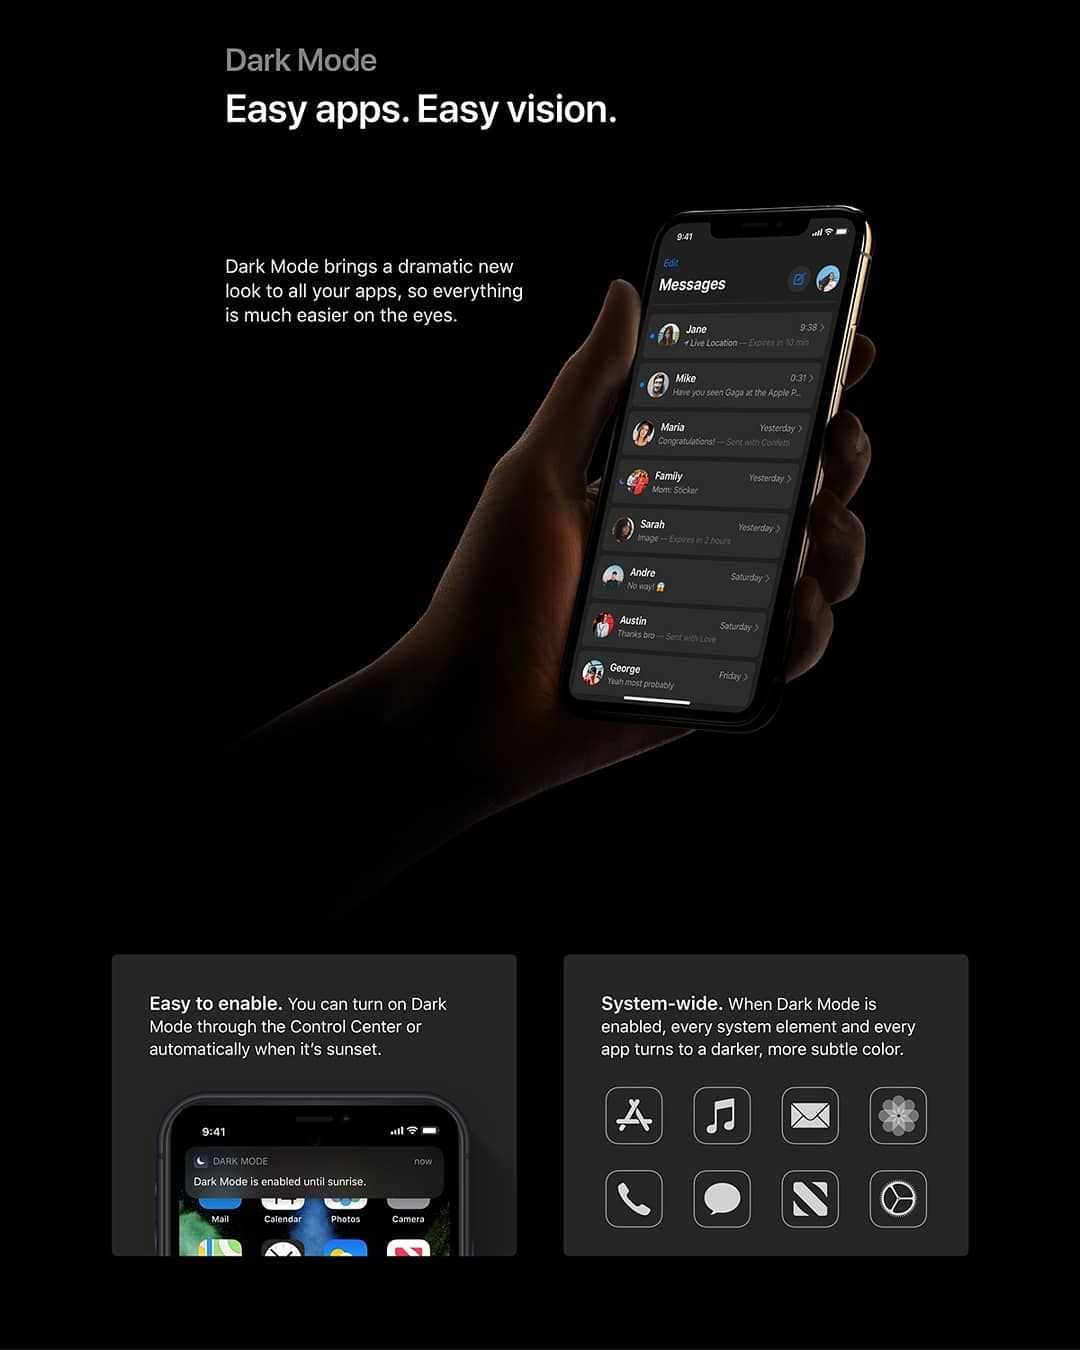 How To Get Dark Mode On Iphone 8 Plus